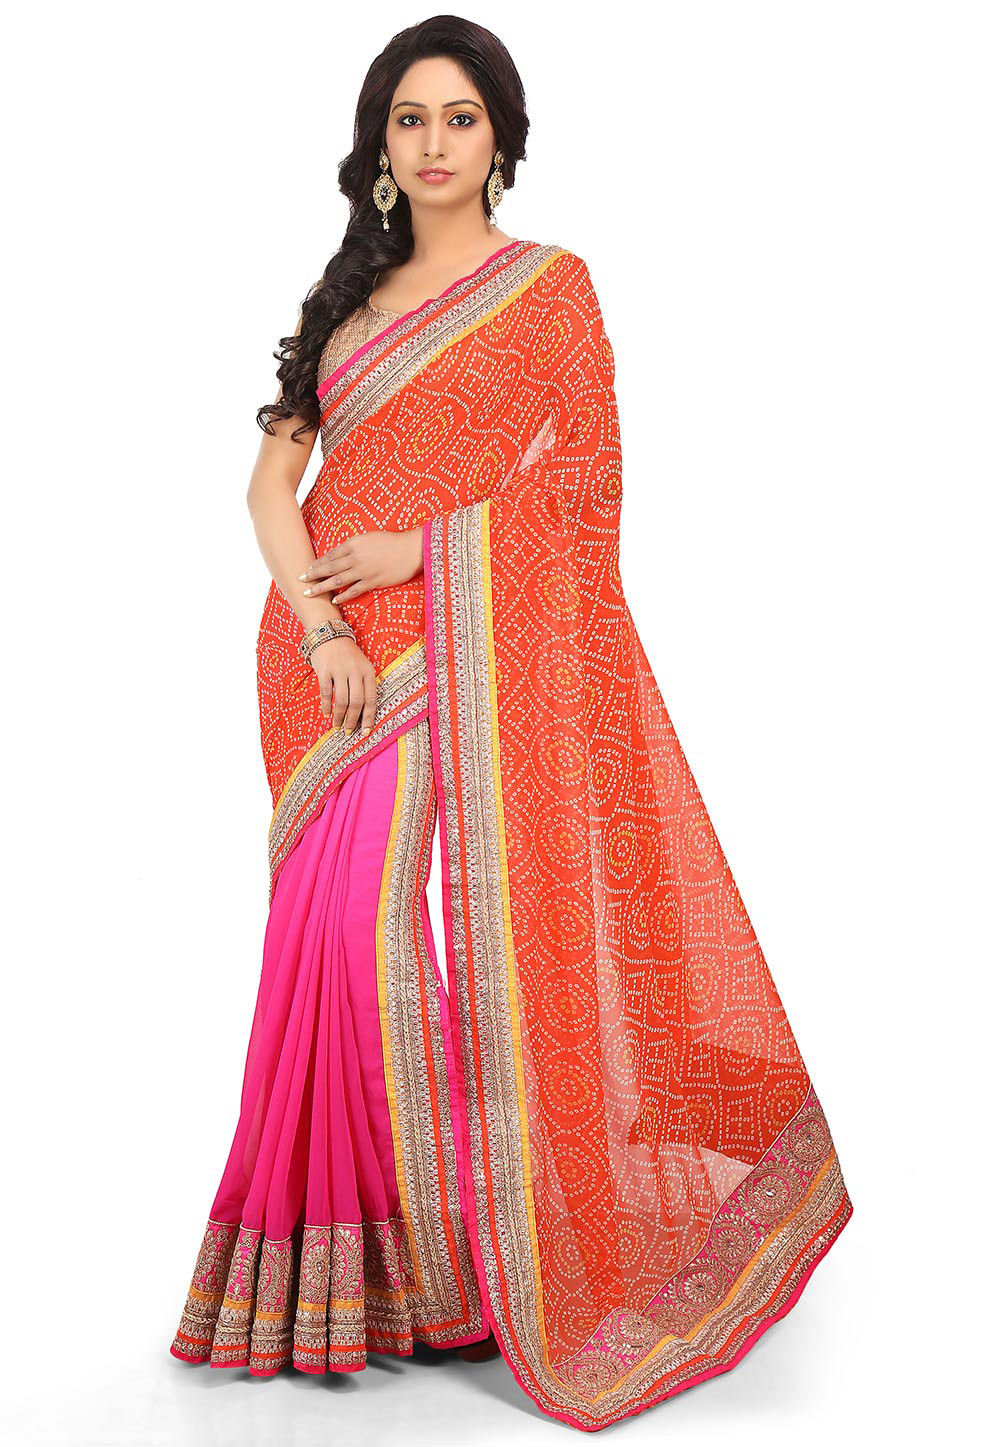 Two Part Georgette Saree in Orange and Ombre Pink